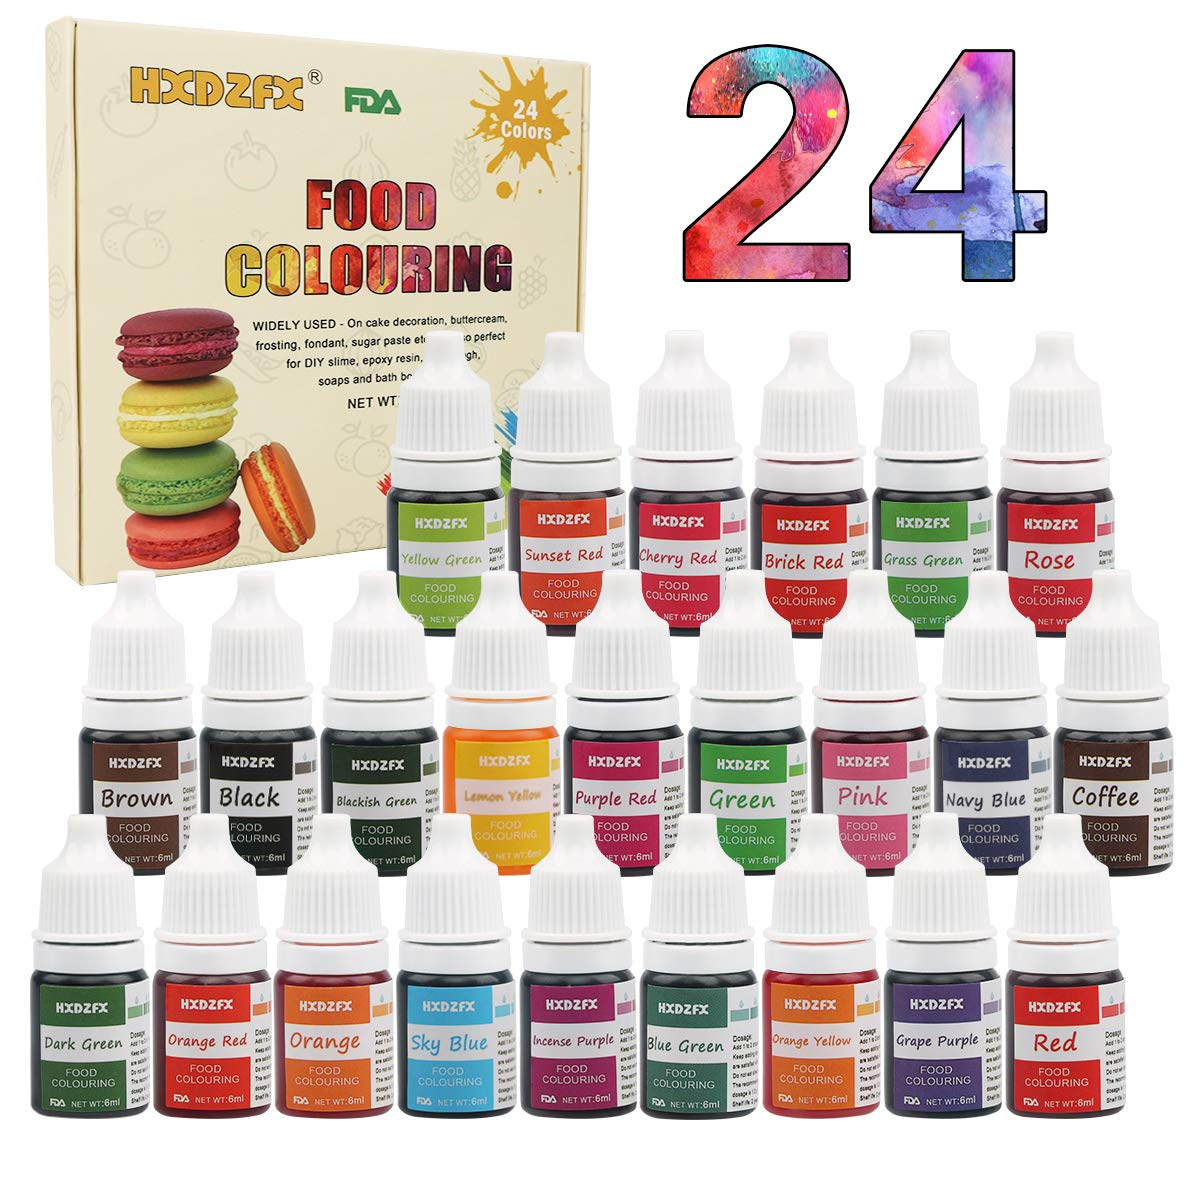 Food Coloring - 24 Color Rainbow Fondant Cake Food Coloring Set for Baking,Decorating,Icing and Cooking - neon Liquid Food Color Dye for Slime Making Kit and DIY Crafts.25 fl.oz.(6ml)Bottles by HXDZFX